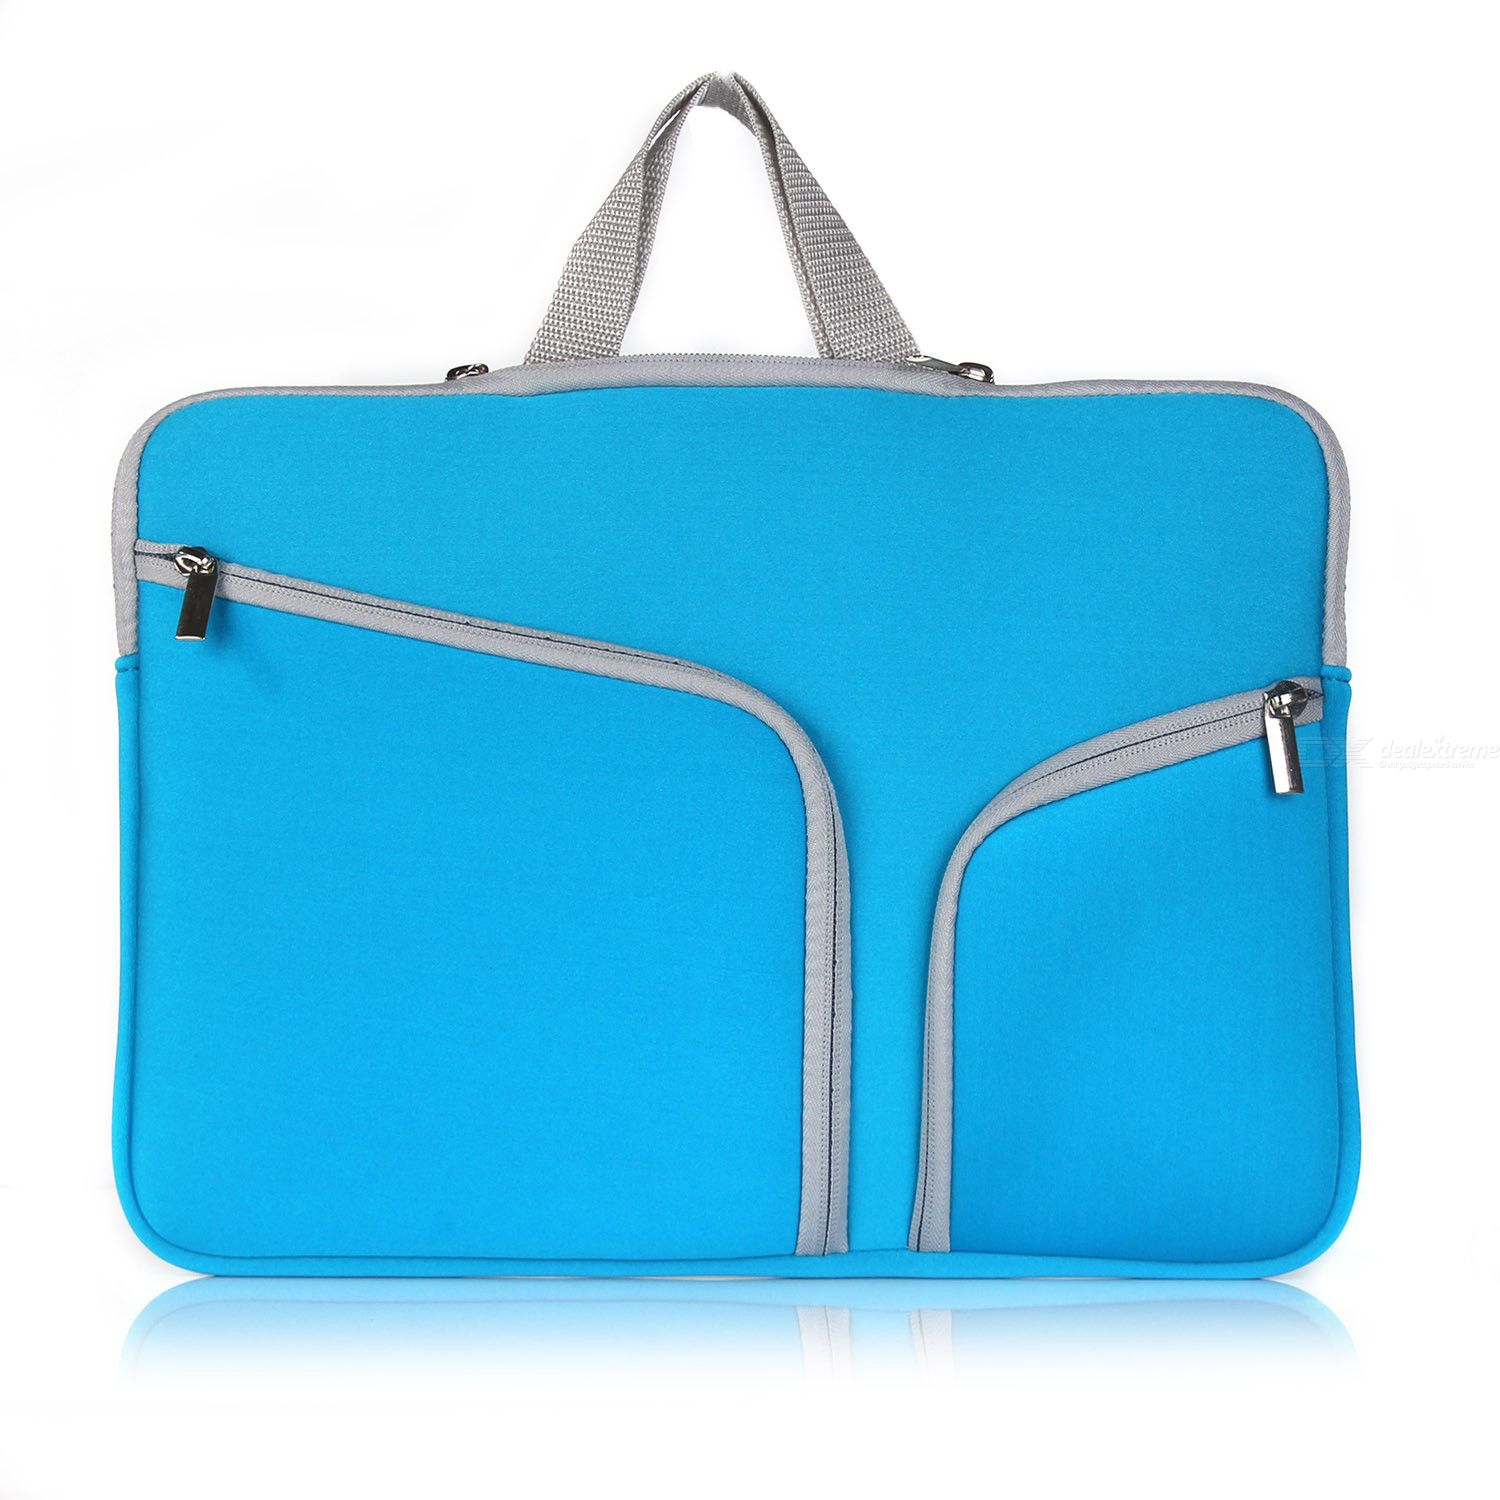 Dayspirit-Double-Zipper-Laptop-Sleeve-Bag-Case-For-Macbook-Air-Pro-Retina-133